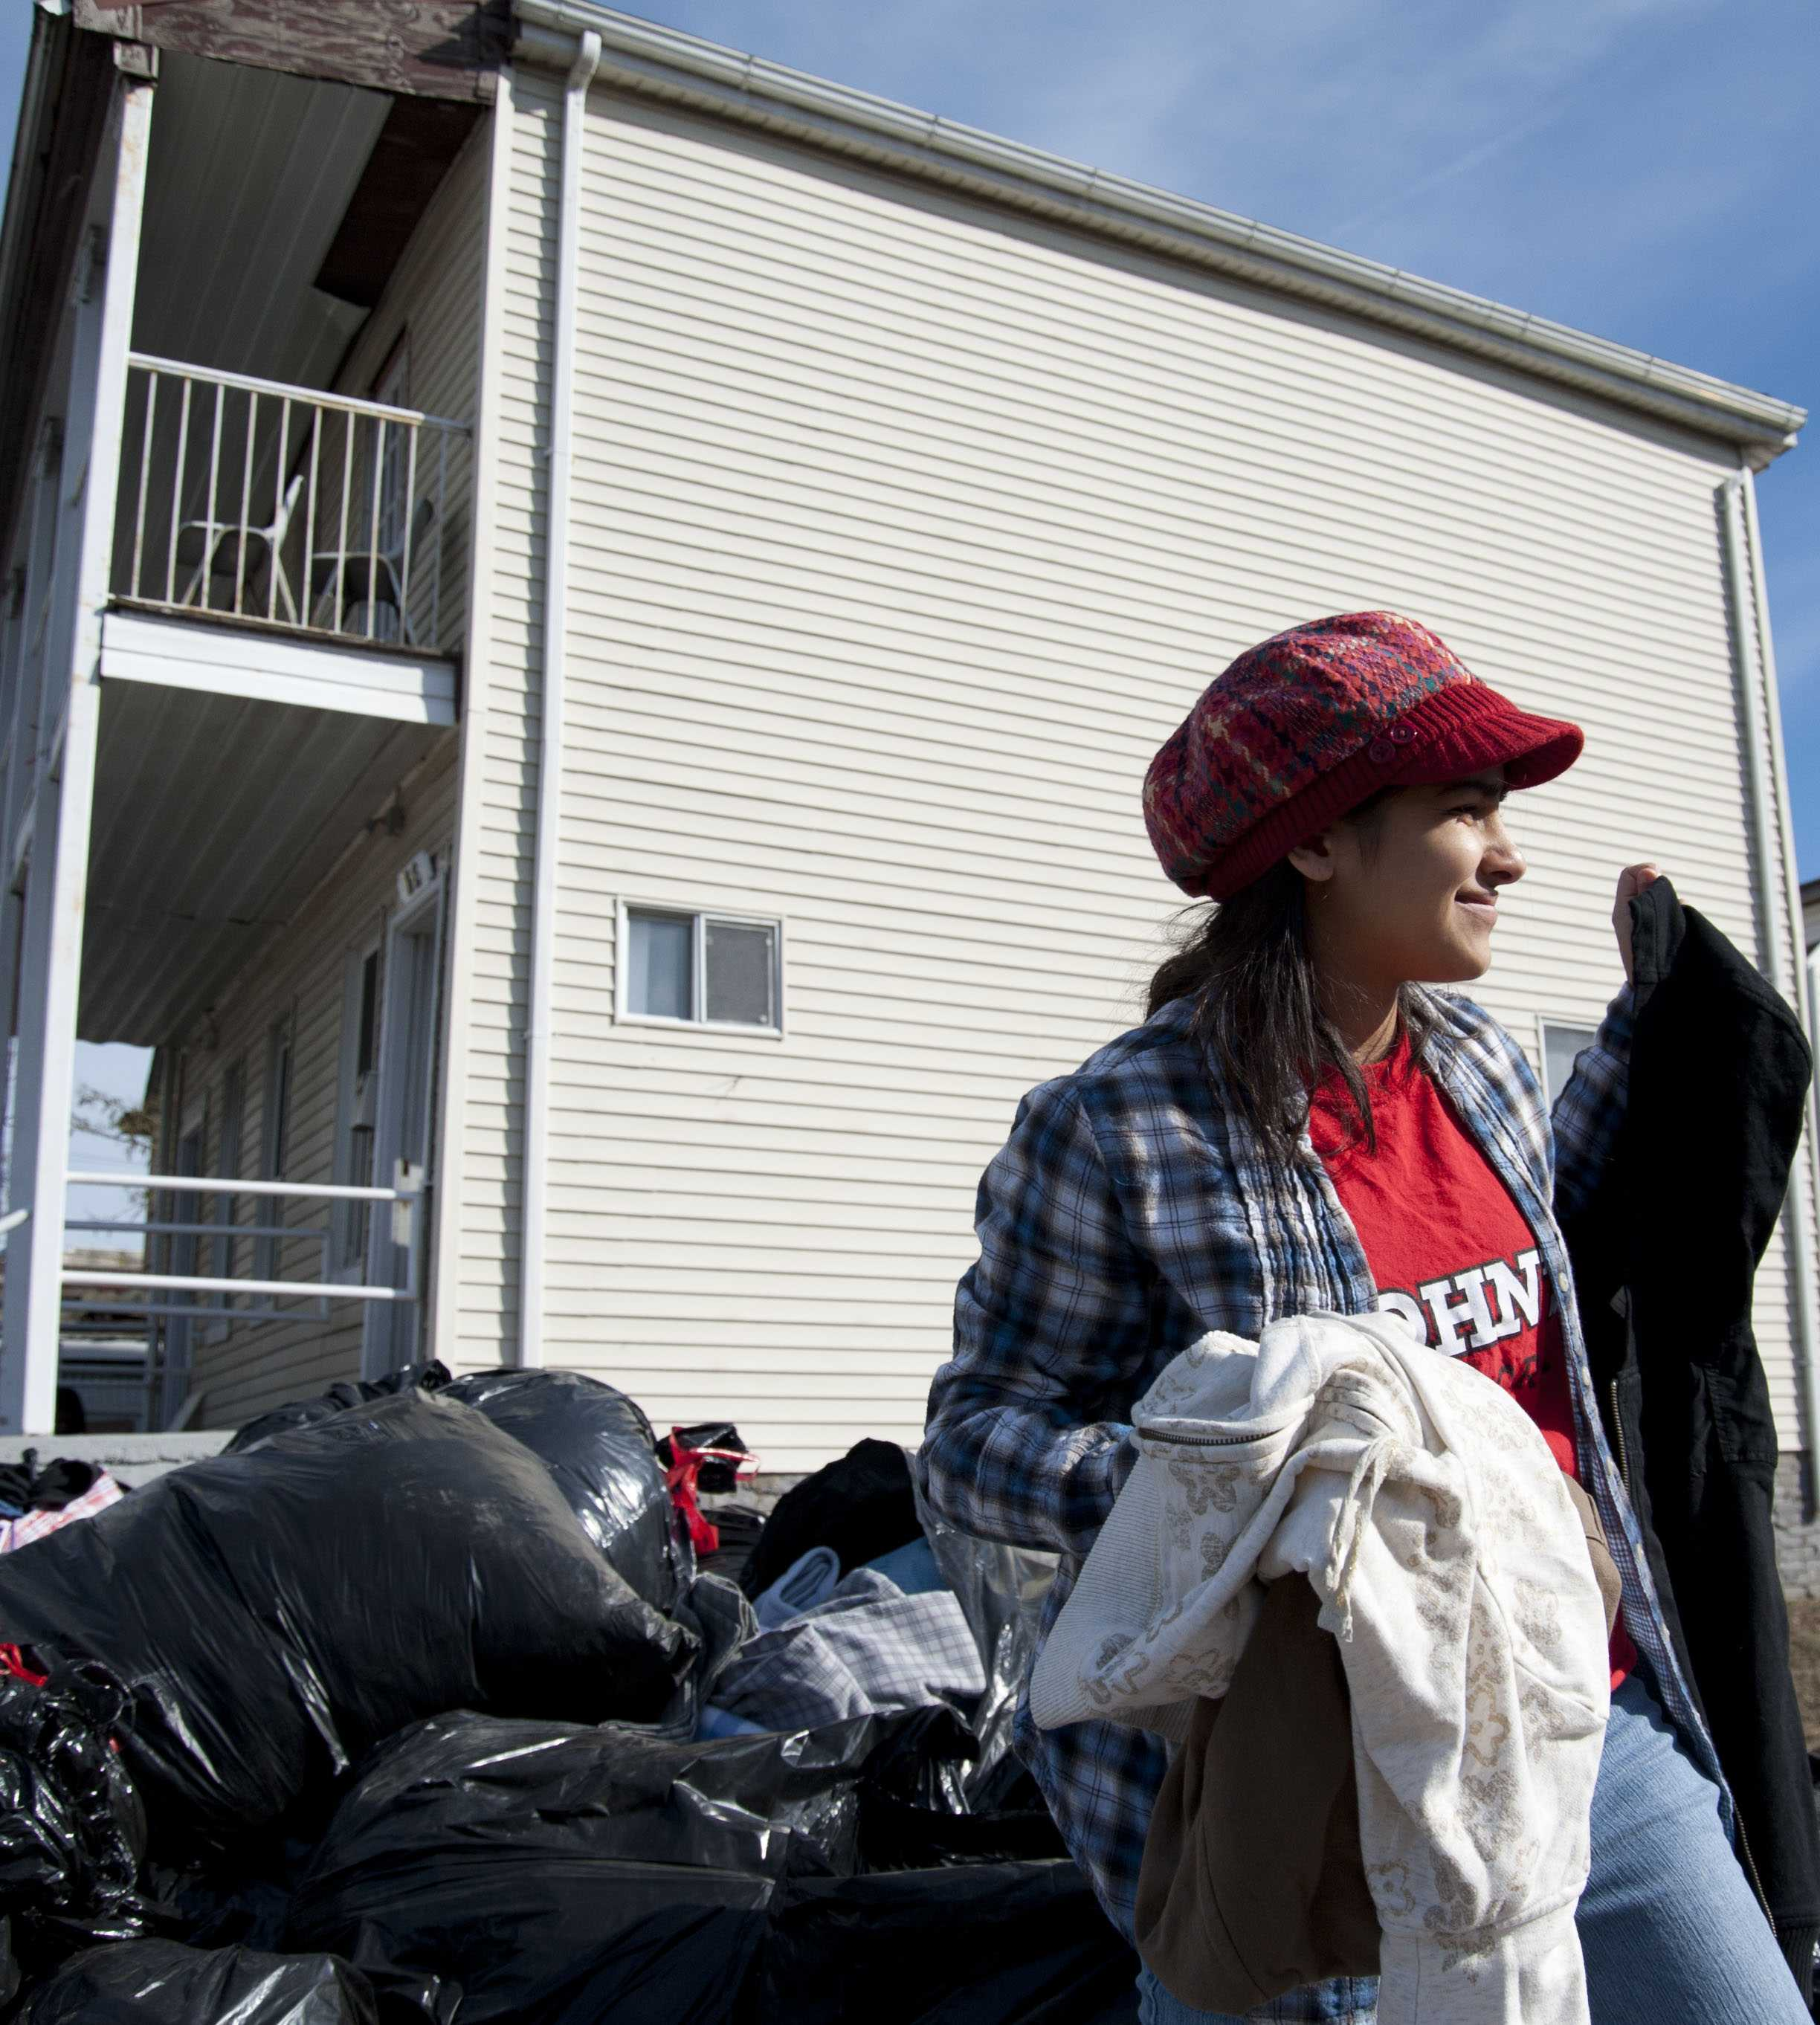 A St. John's student helps organize the clothes being dropped off for donations in Far Rockaway, NY.